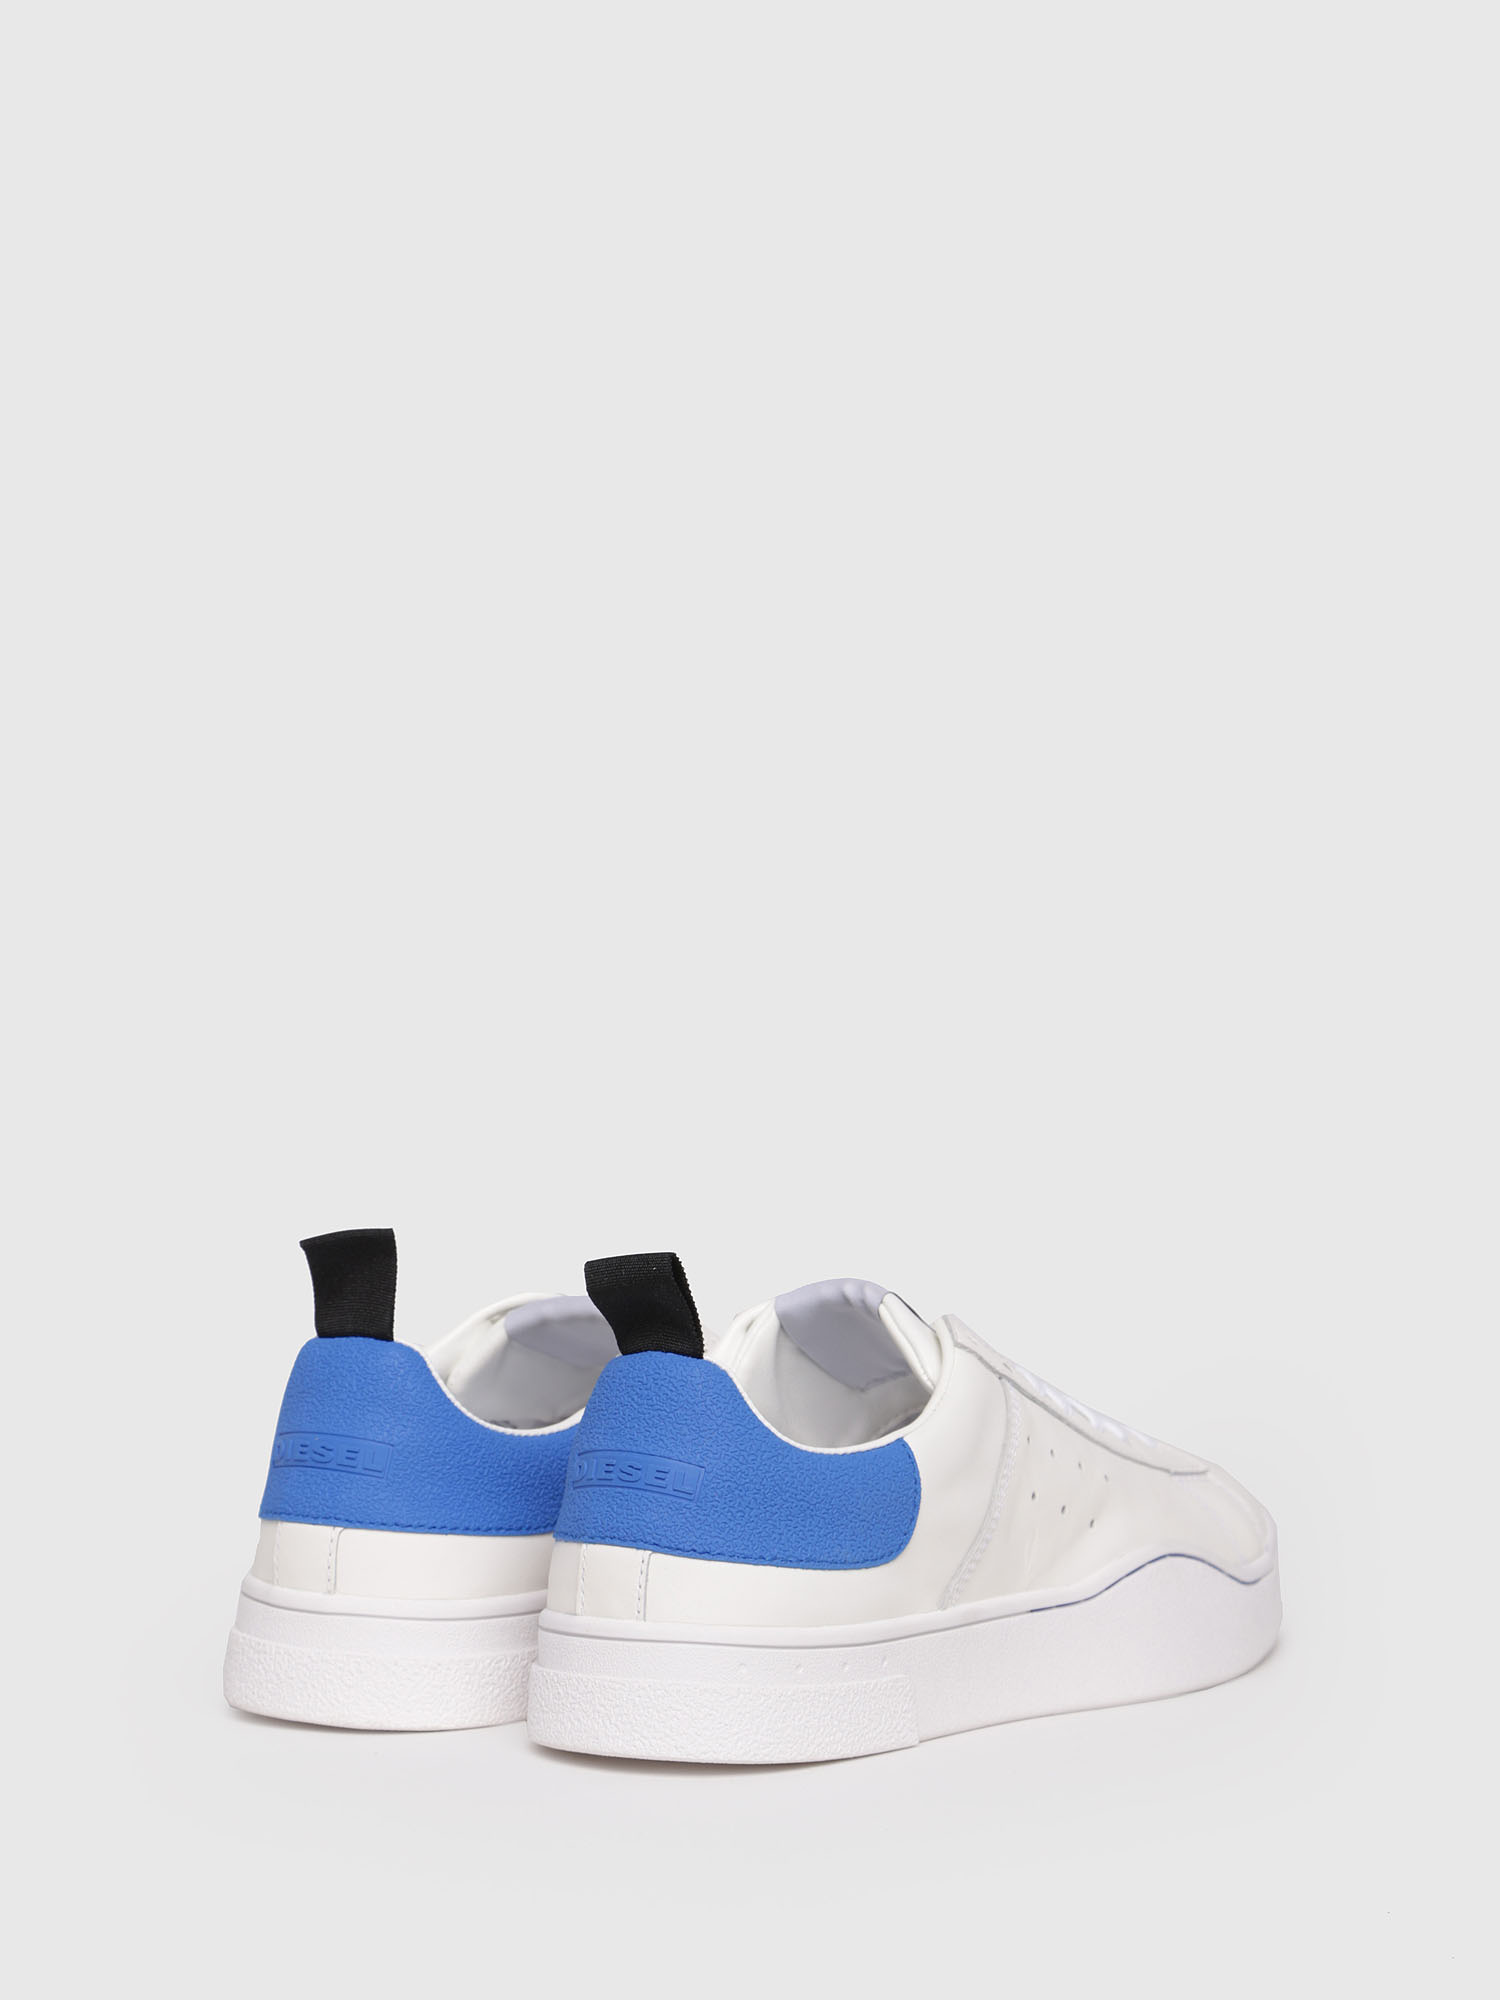 Diesel - S-CLEVER LOW,  - Baskets - Image 3